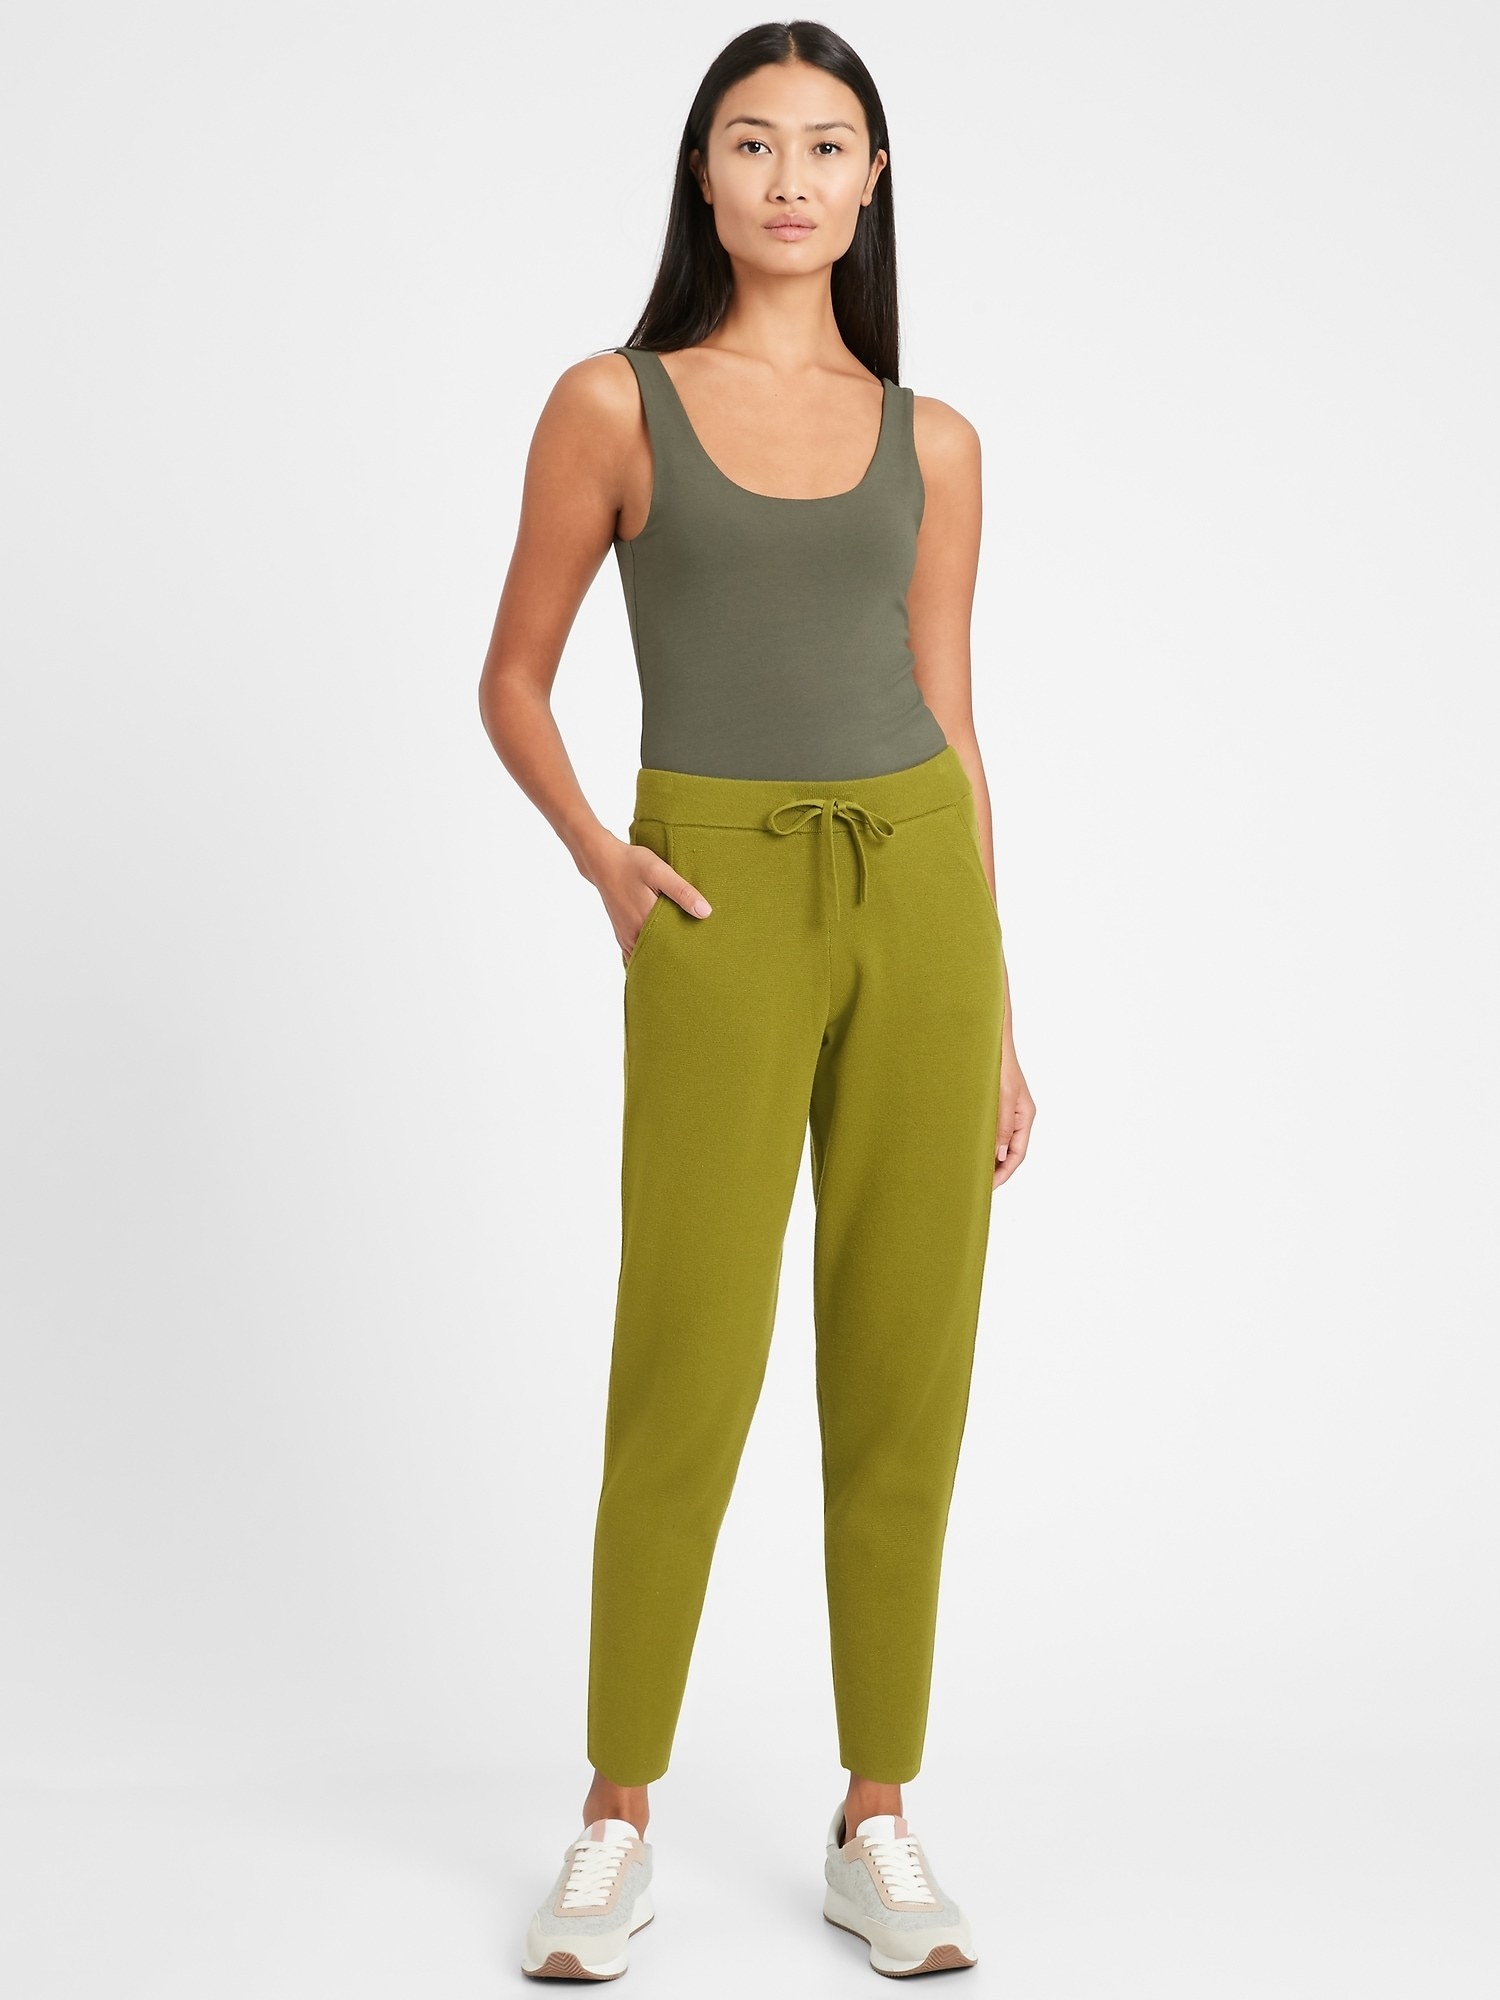 Model wearing the ankle-length joggers with pockets and a tie at the waist in bright green